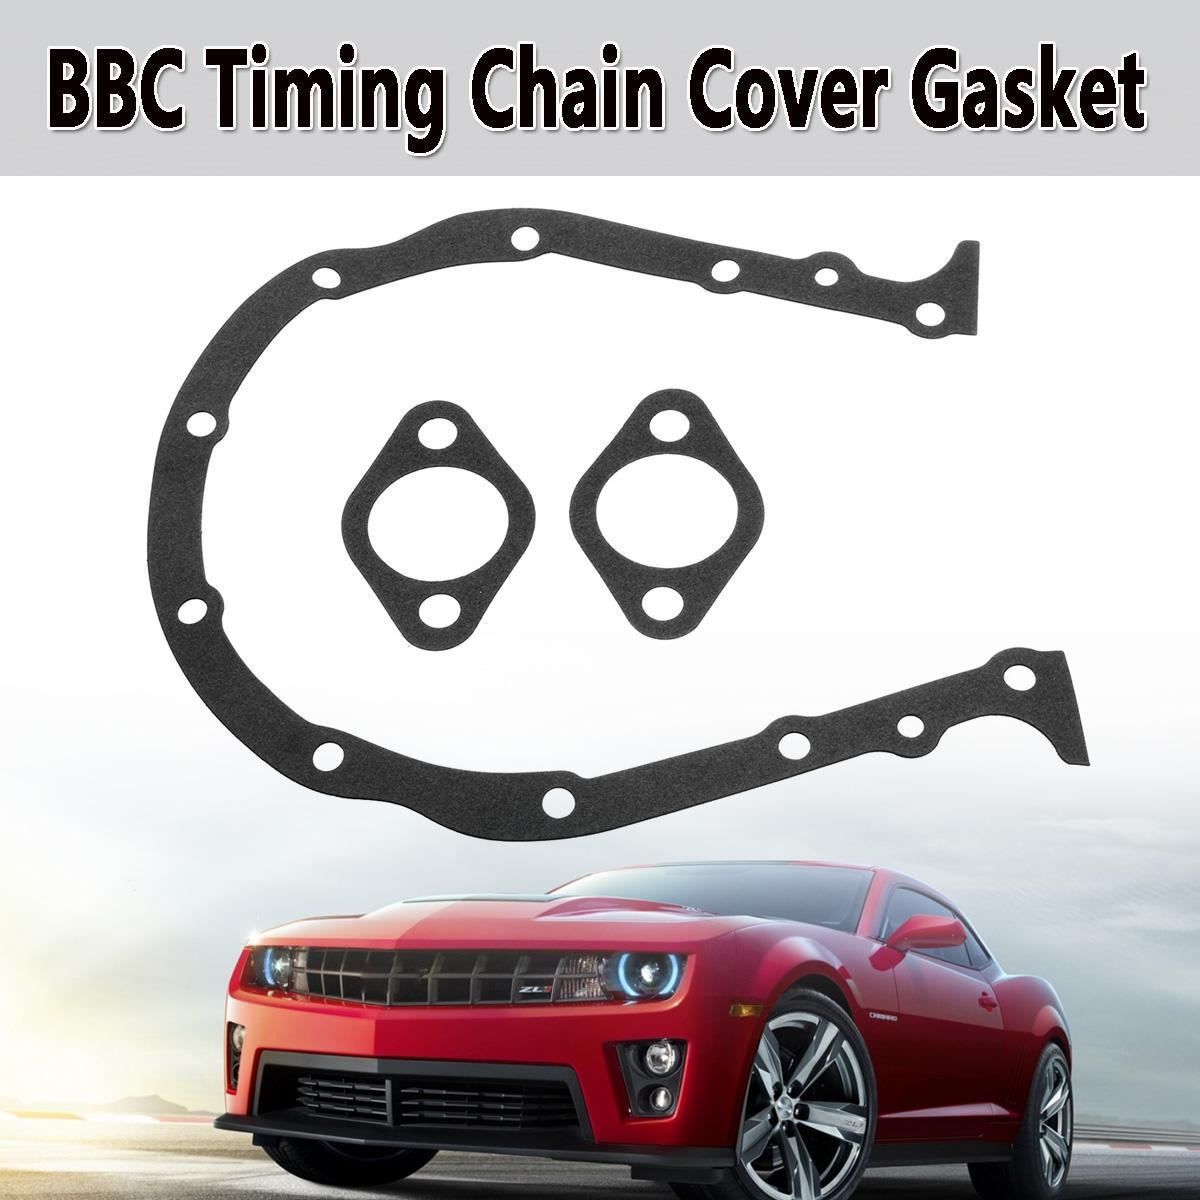 Black Front BBC Timing Chain Cover Gasket For BB Chevy 396 402 427 454 472  502